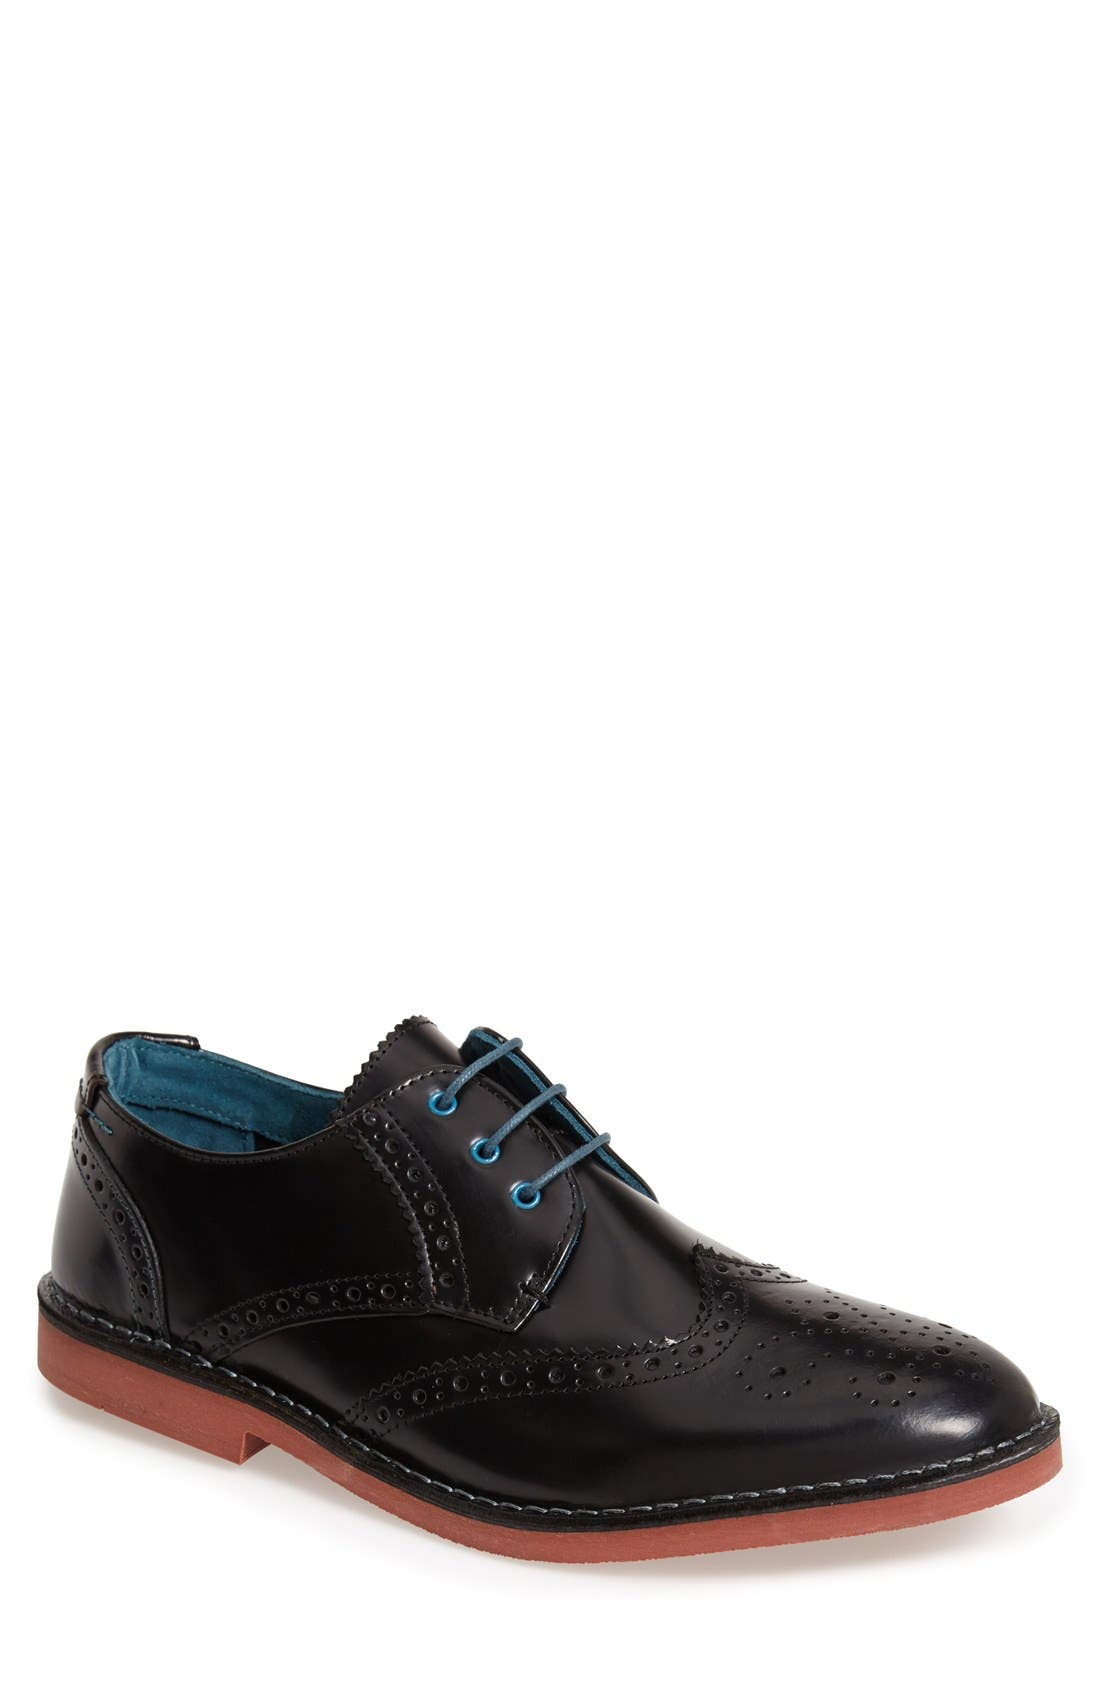 TED BAKER LONDON, 'Joorge' Wingtip, Main thumbnail 1, color, 003